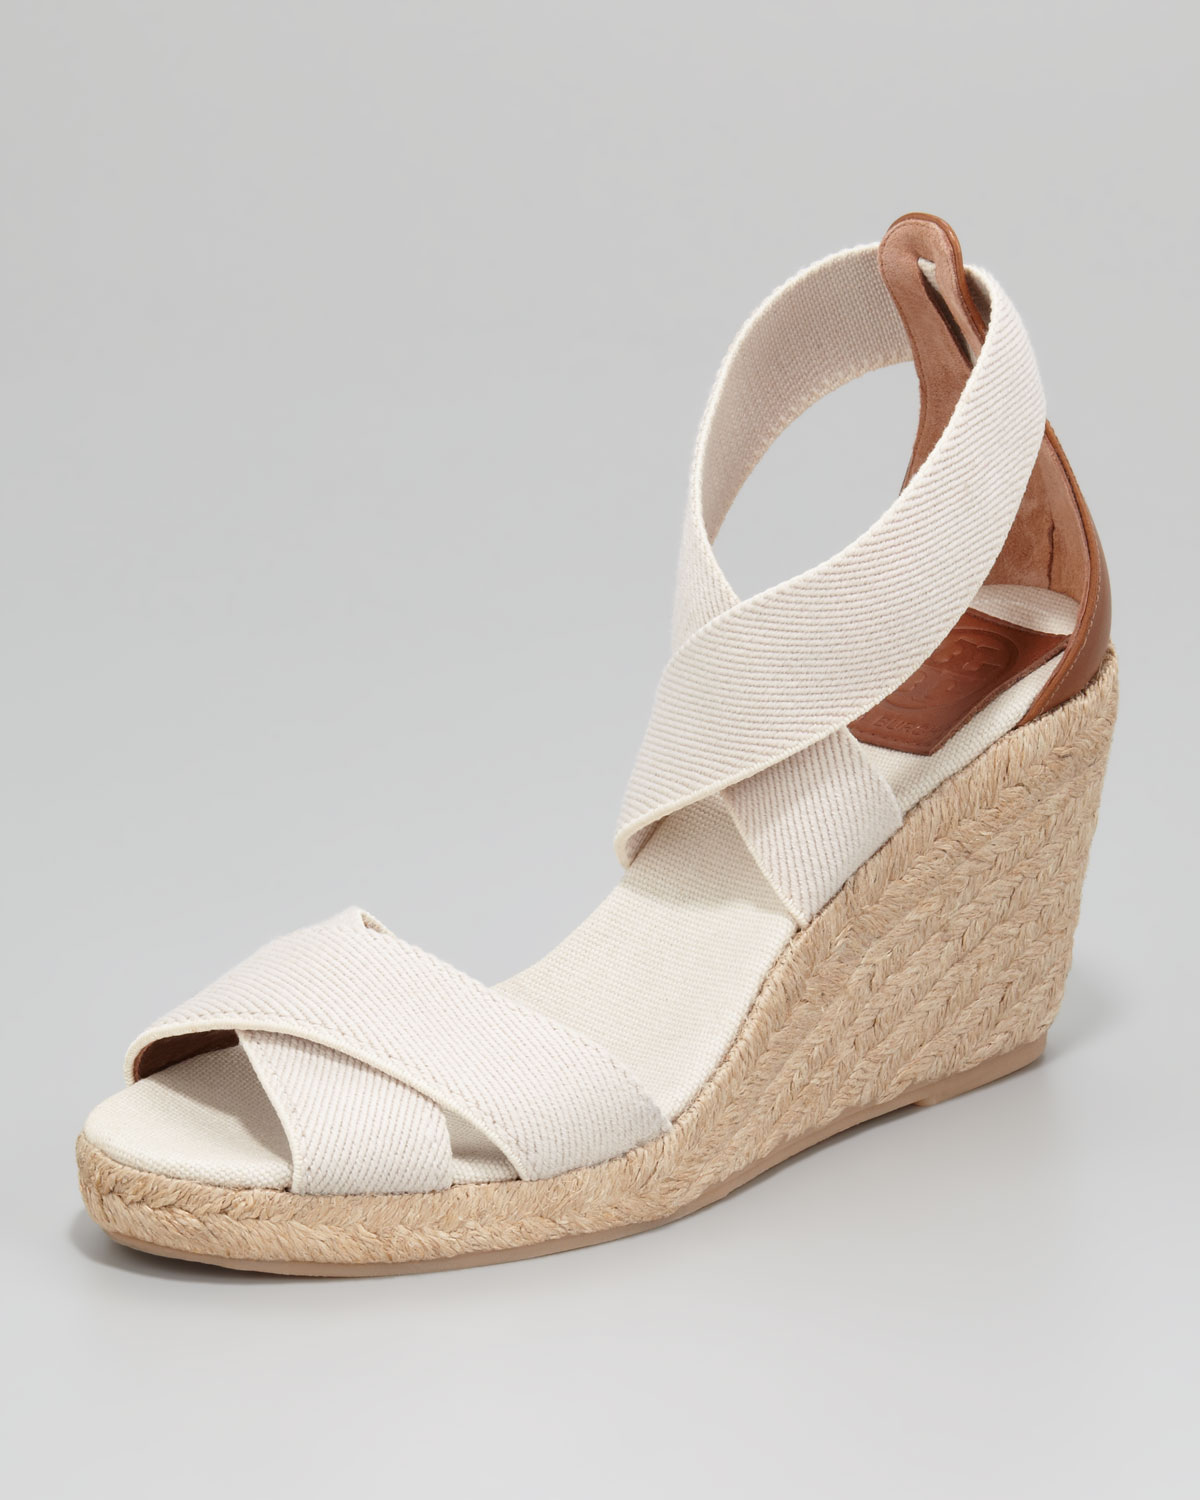 5d5ecba1e12f Lyst - Tory Burch Adonis Stretch Espadrille Wedges in Natural